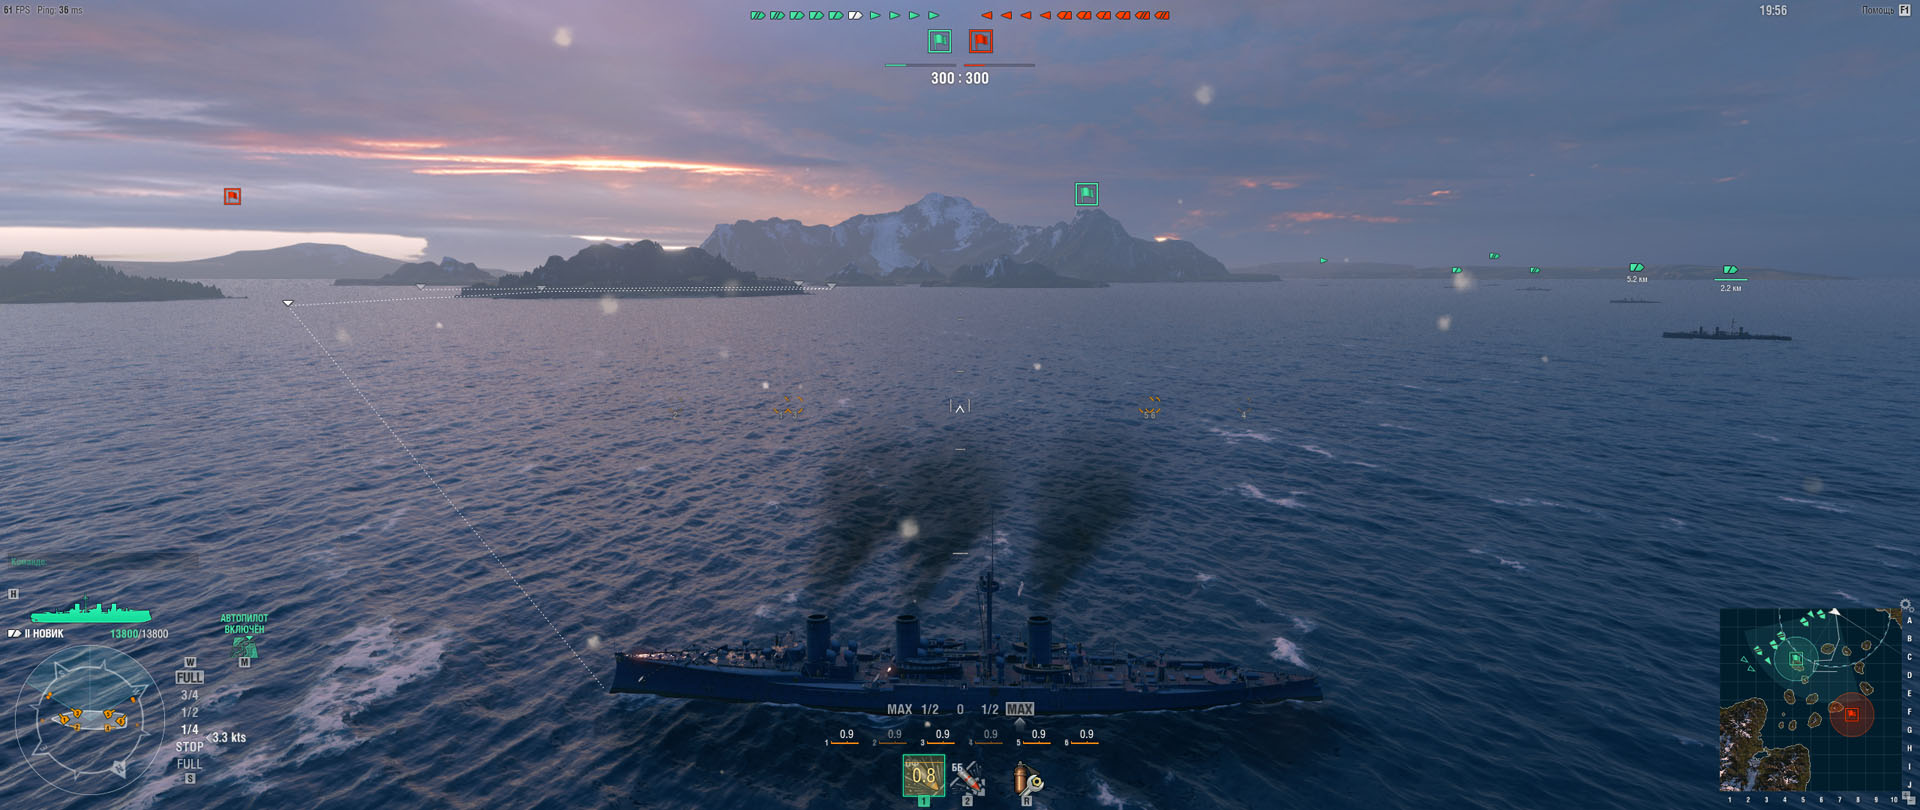 World of Warships Screenshot 2018.06.13 - 15.55.49.28.jpg - World of Warships